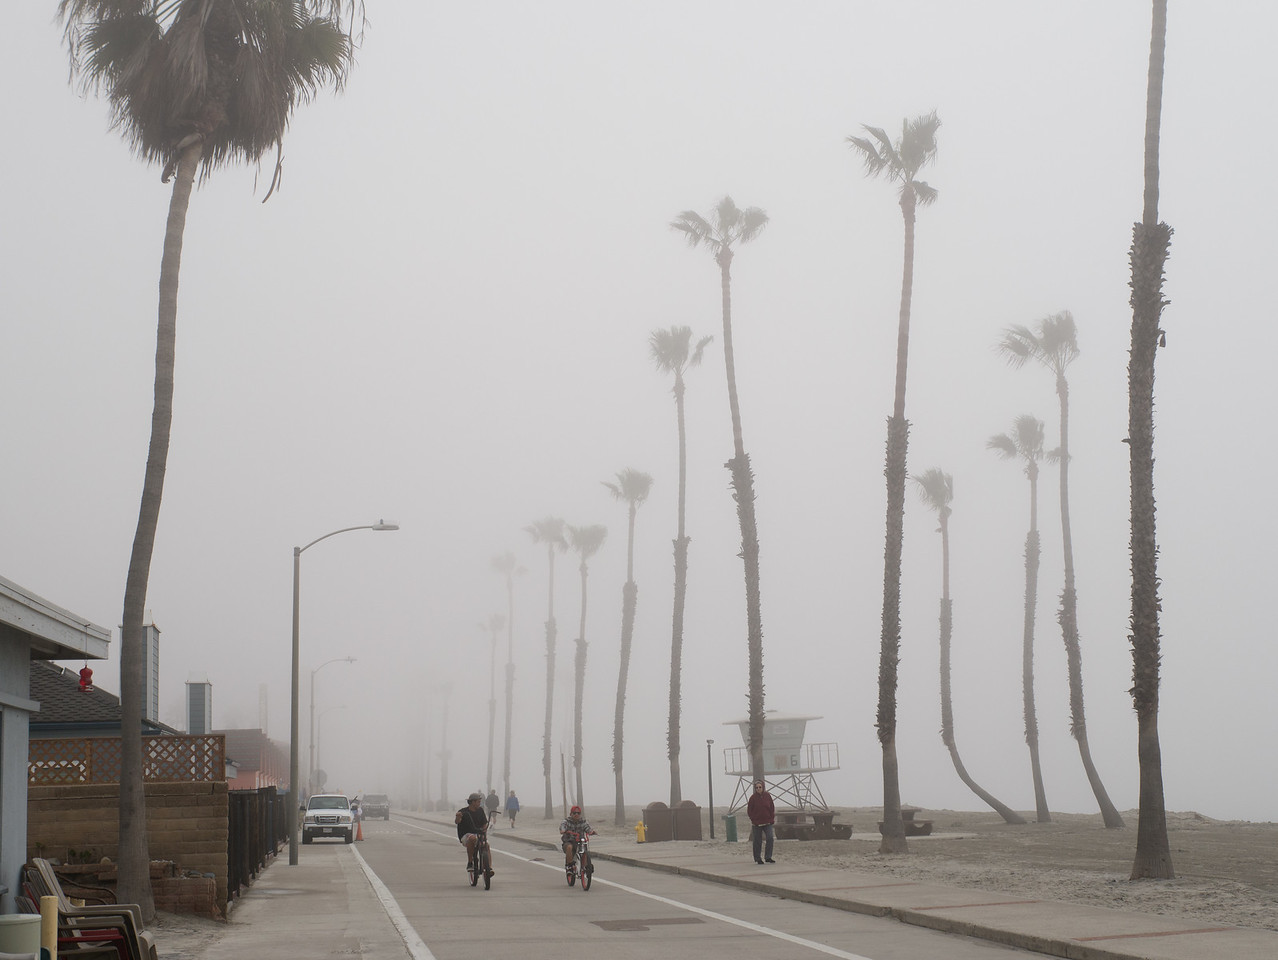 Palm trees along the Strand fading into the fog